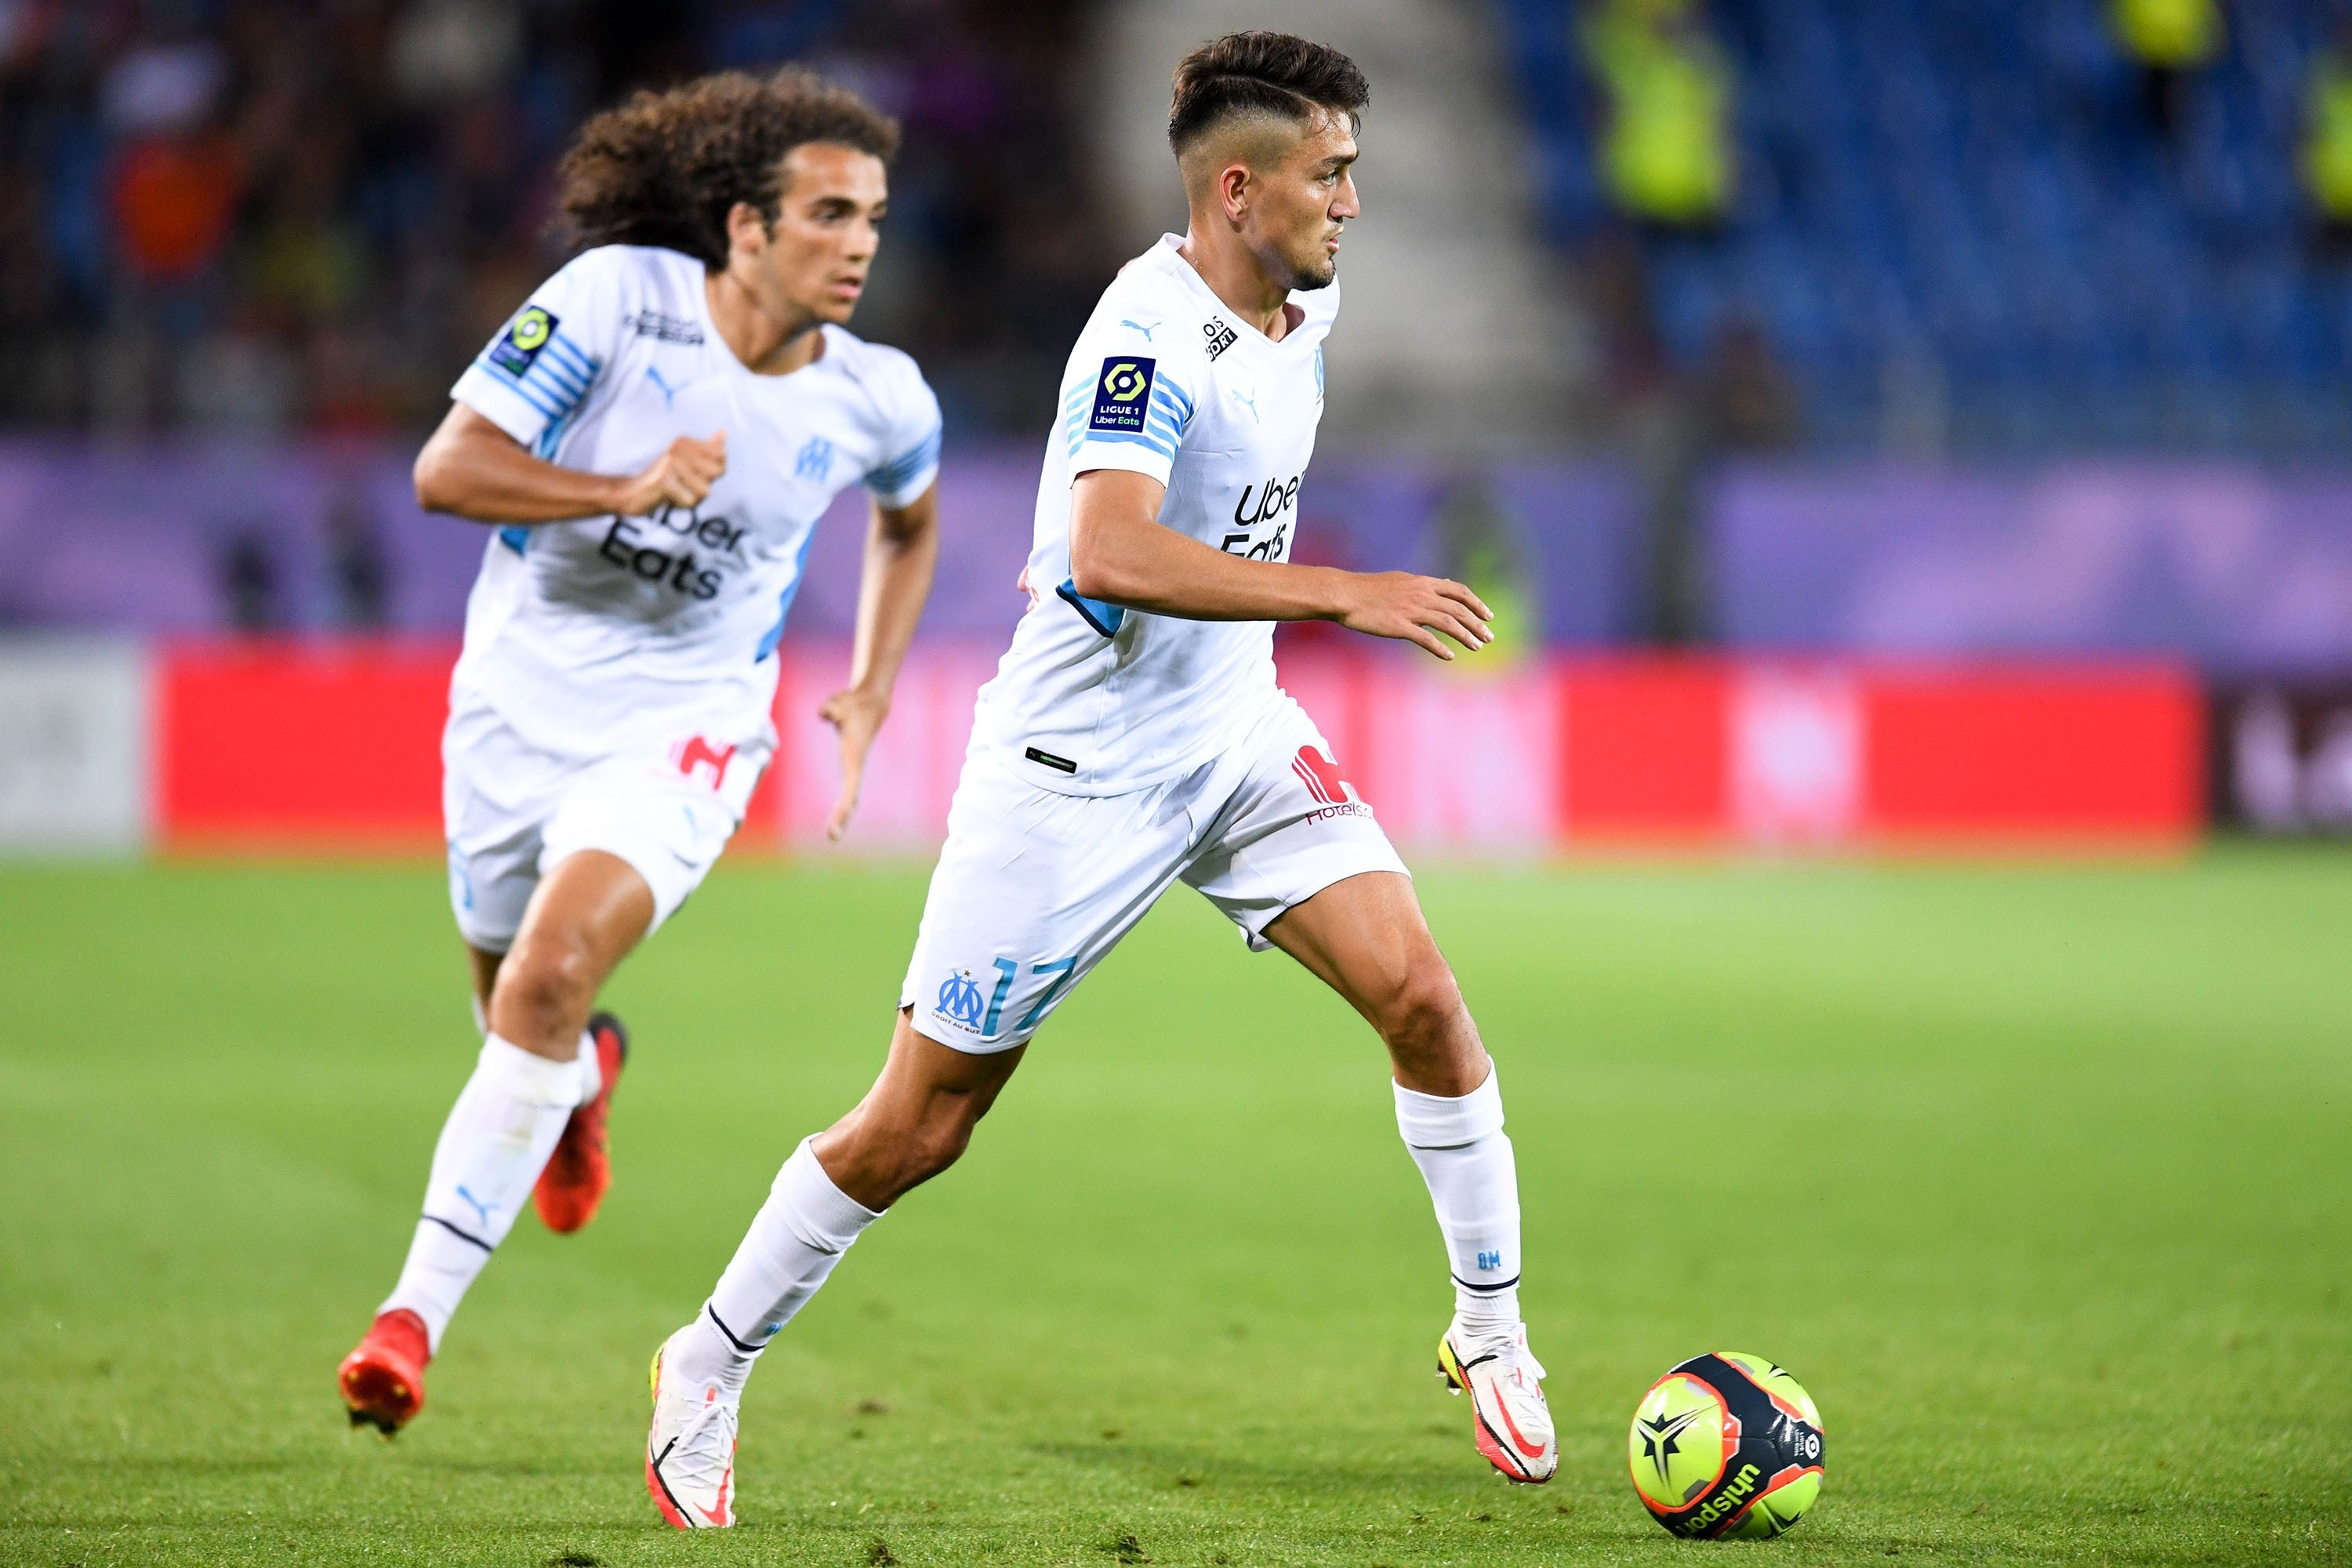 Marseille winger Cengiz Ünder (R) in action against Montpellier during a Ligue 1 match, Montpellier, France, Aug. 8, 2021.